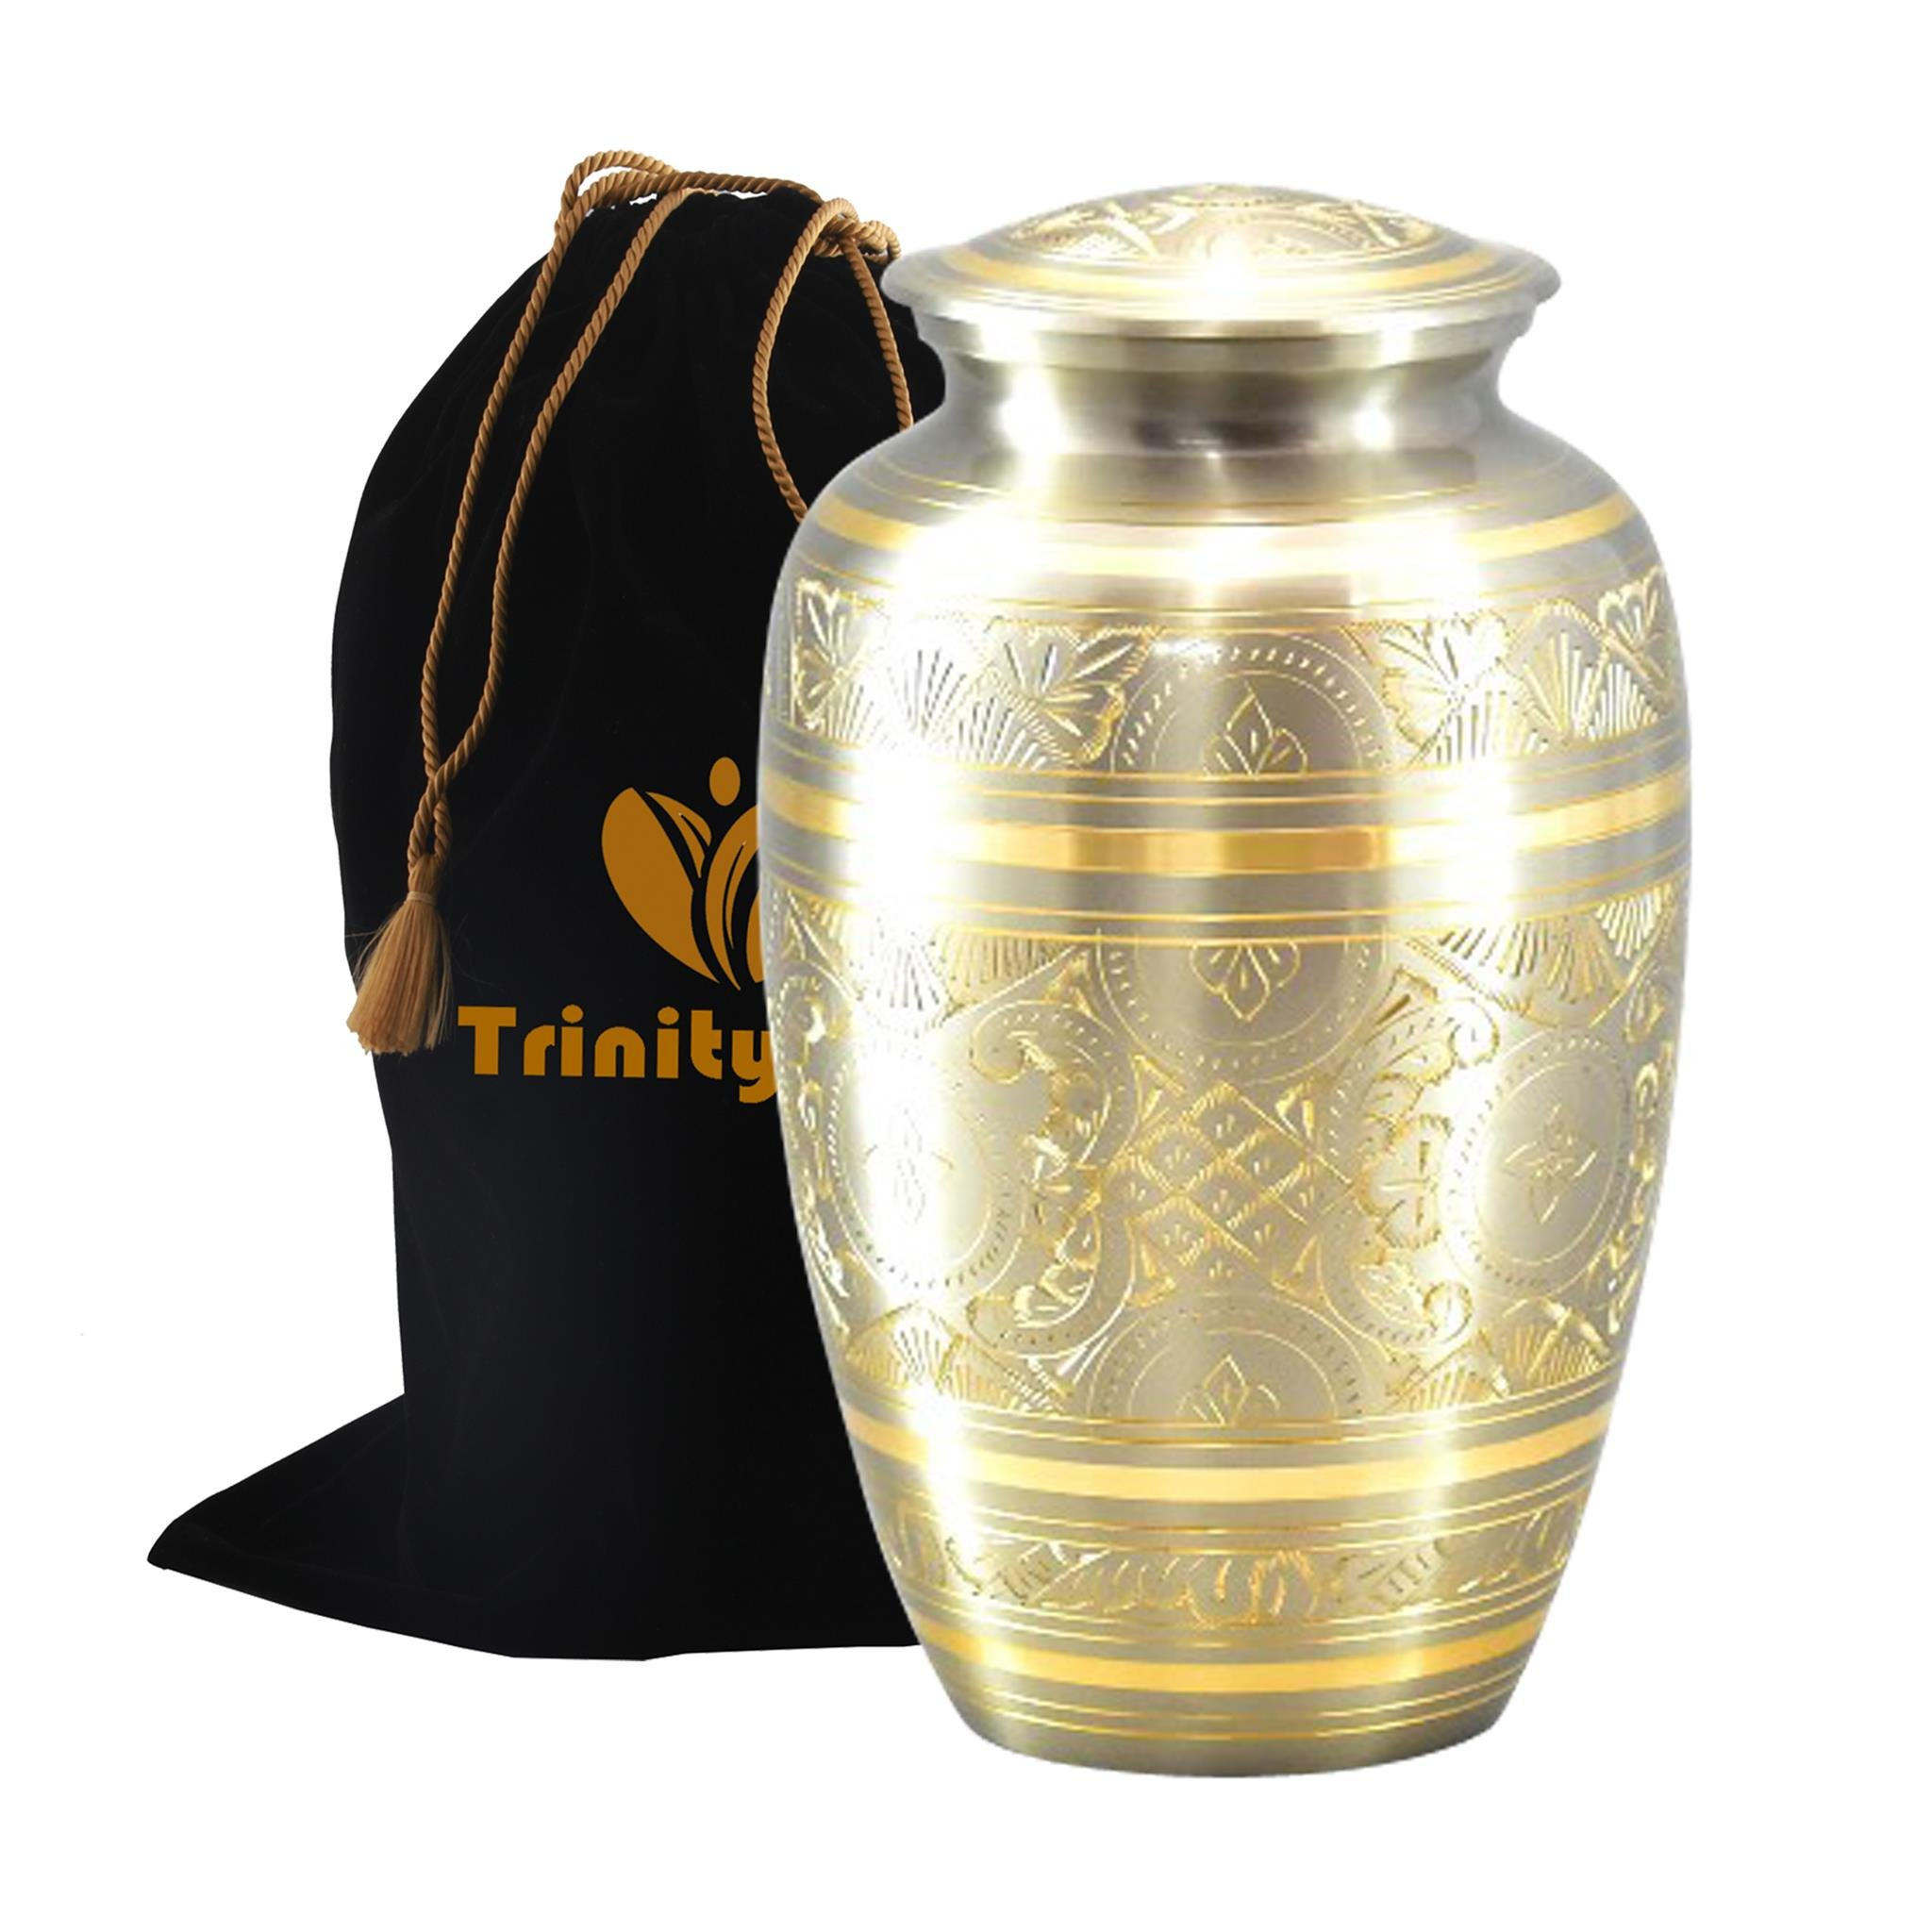 Platinum Gold Brass Cremation Urn - Beautifully Handcrafted Adult Funeral Urn - Solid Brass Funeral Urn - Affordable Urn for Human Ashes with Free Velvet Bag